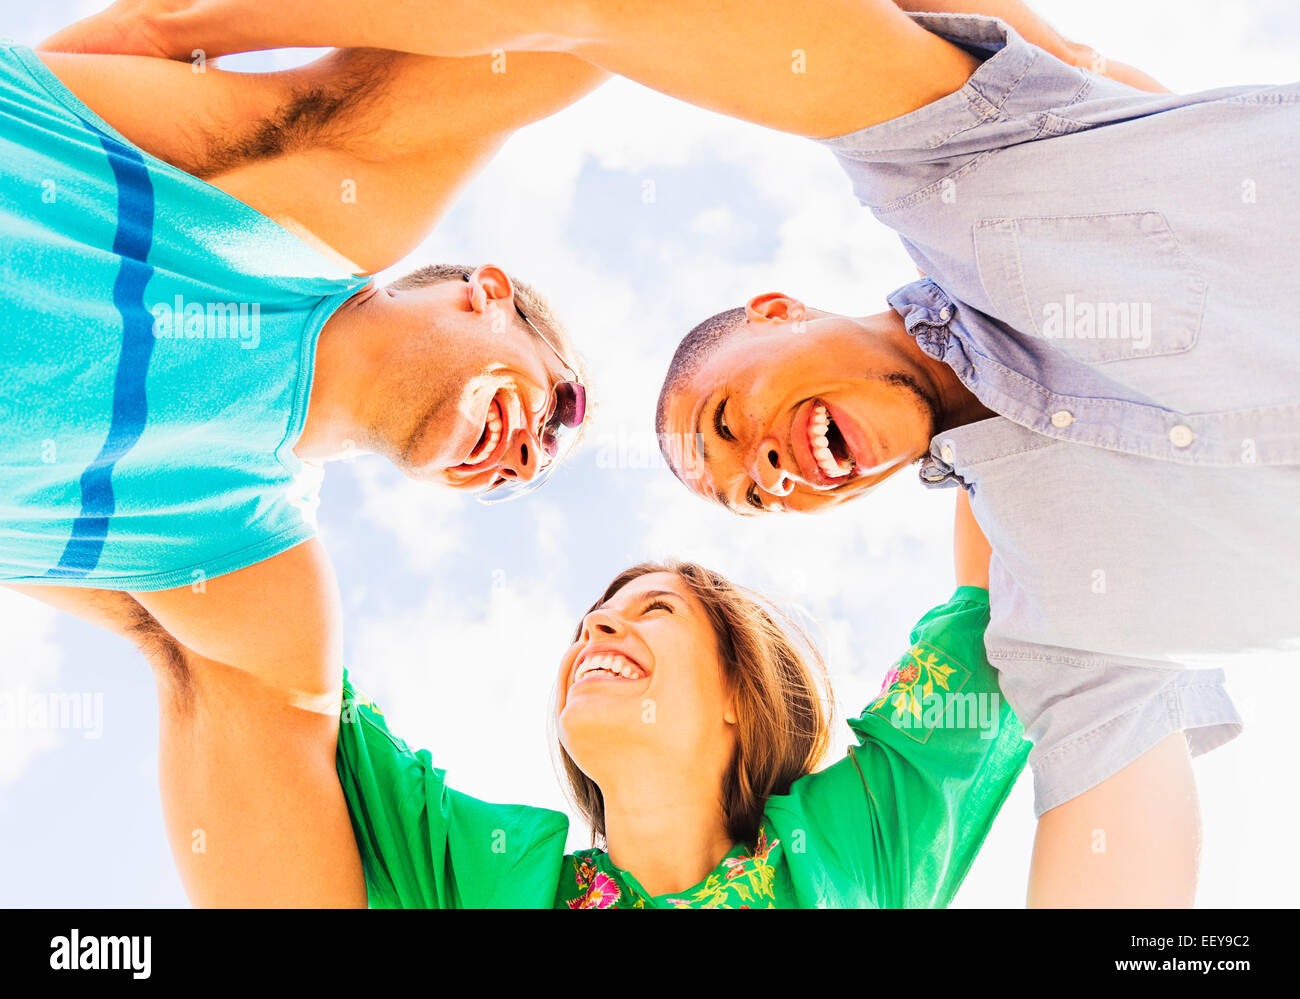 Young people with arms around each other - Stock Image